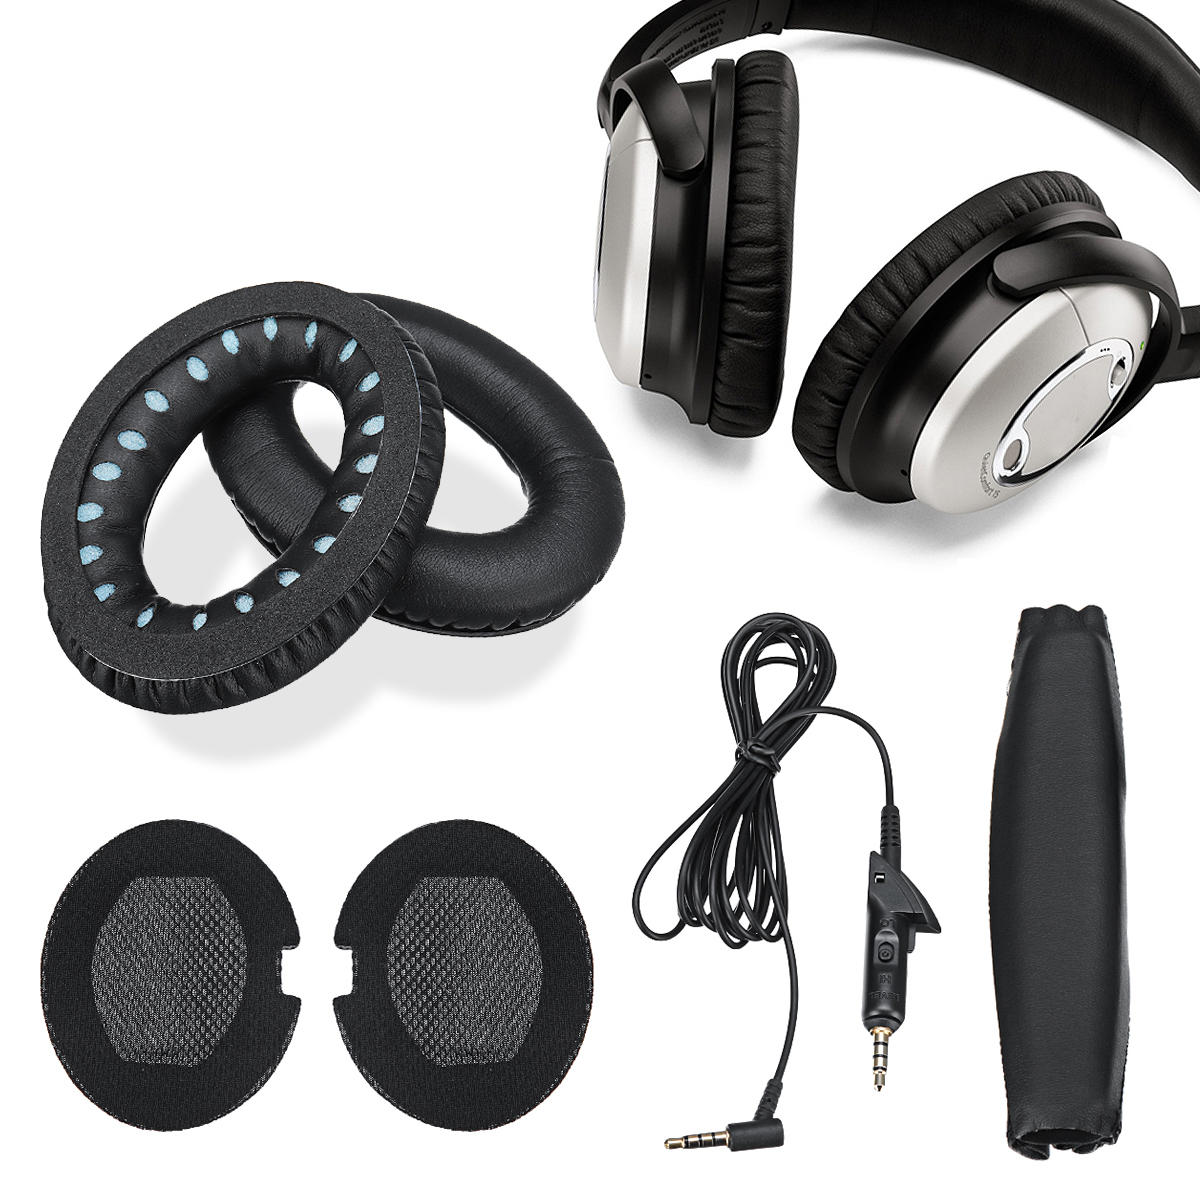 Cuffie sostitutive Auricolari Cavo audio Set di archetti per BOSE QuietComfort QC15